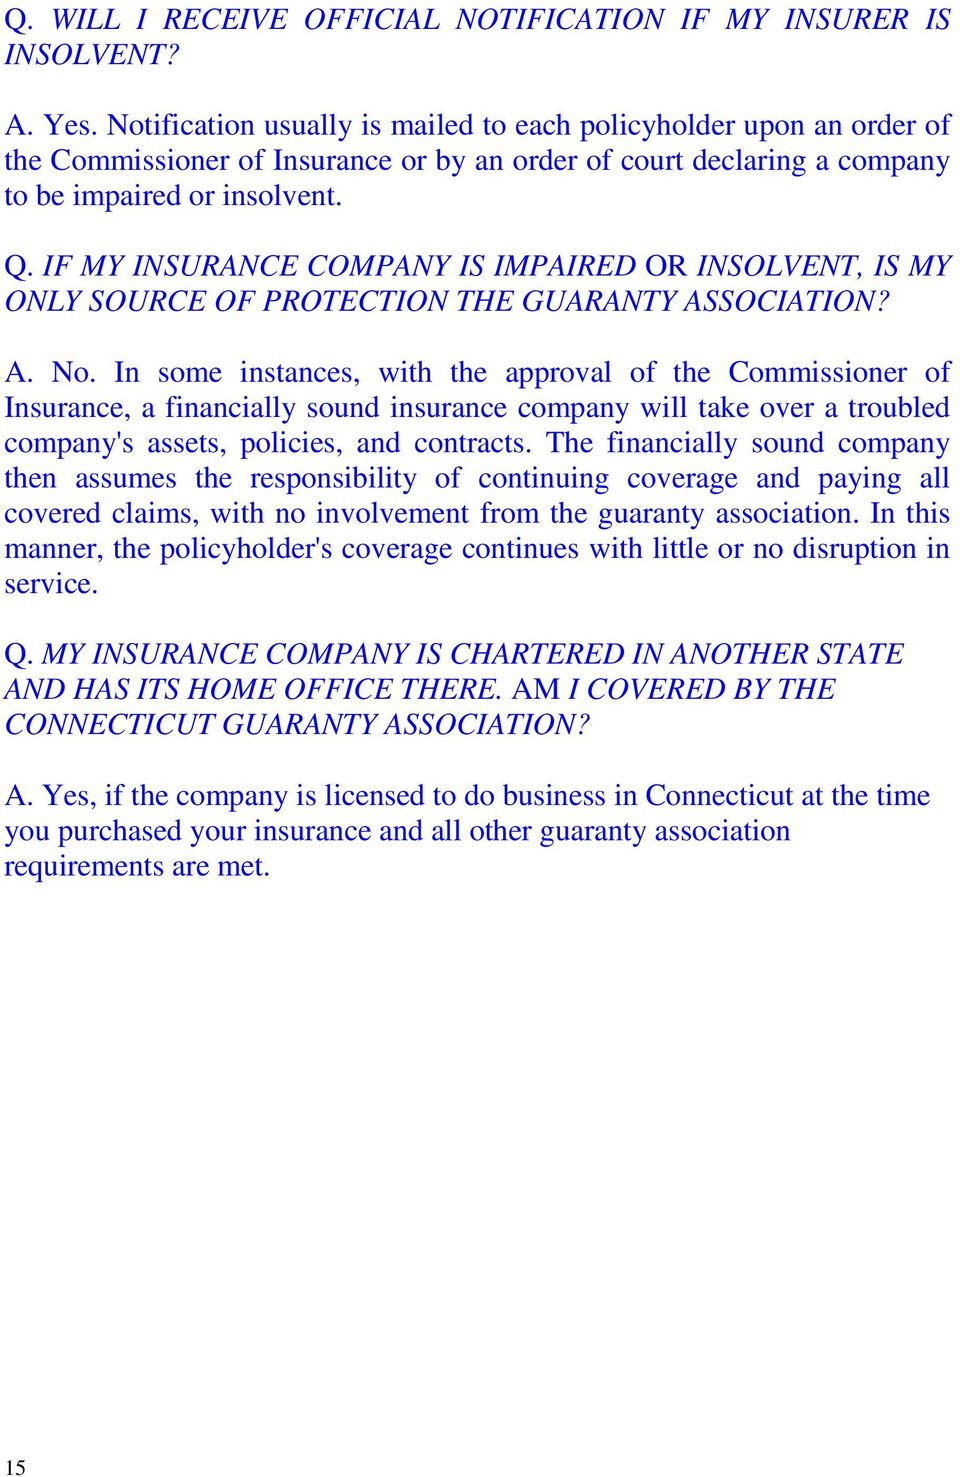 IF MY INSURANCE COMPANY IS IMPAIRED OR INSOLVENT, IS MY ONLY SOURCE OF PROTECTION THE GUARANTY ASSOCIATION? A. No.